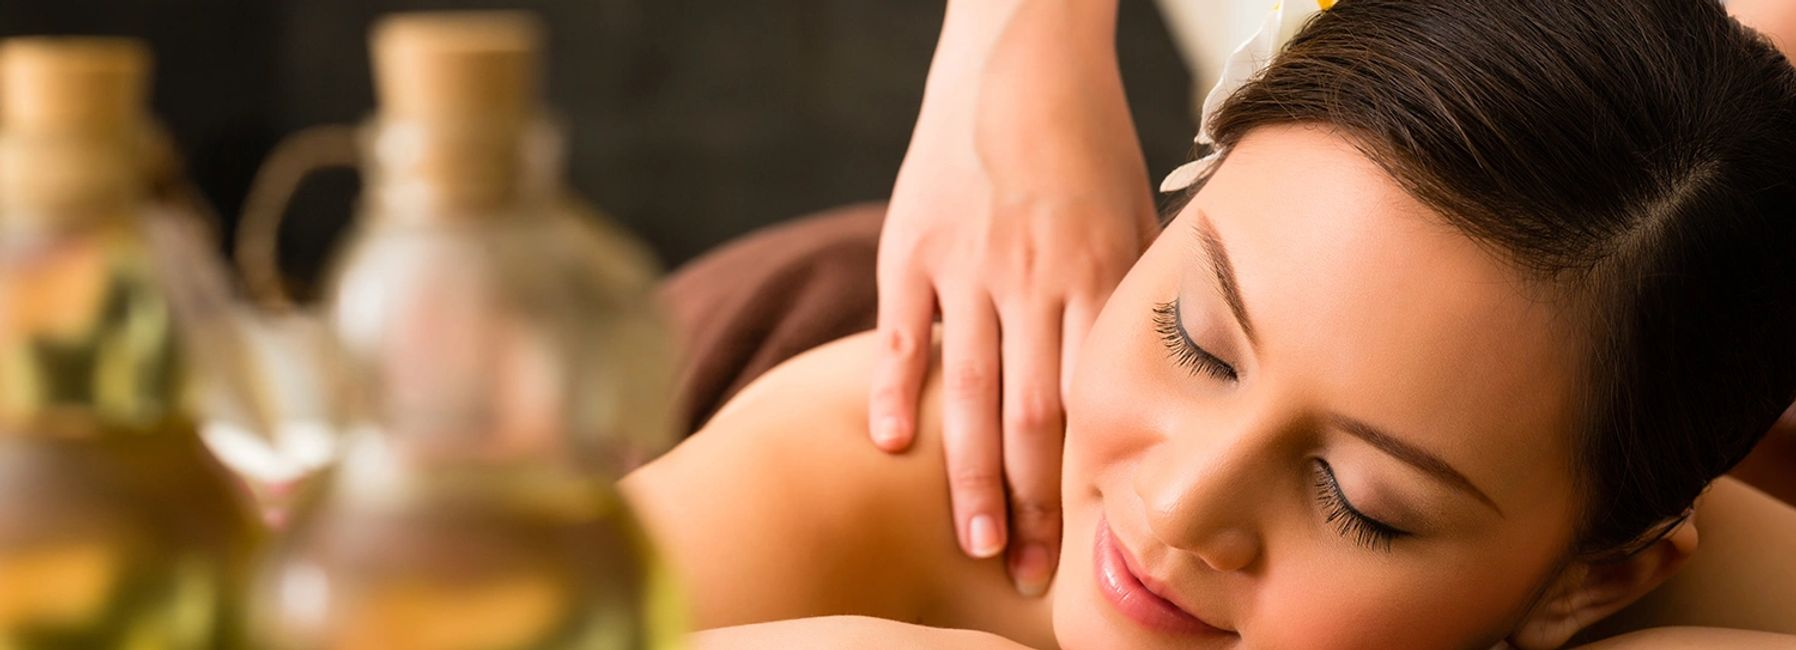 MASSAGE THERAPY DIPLOMA